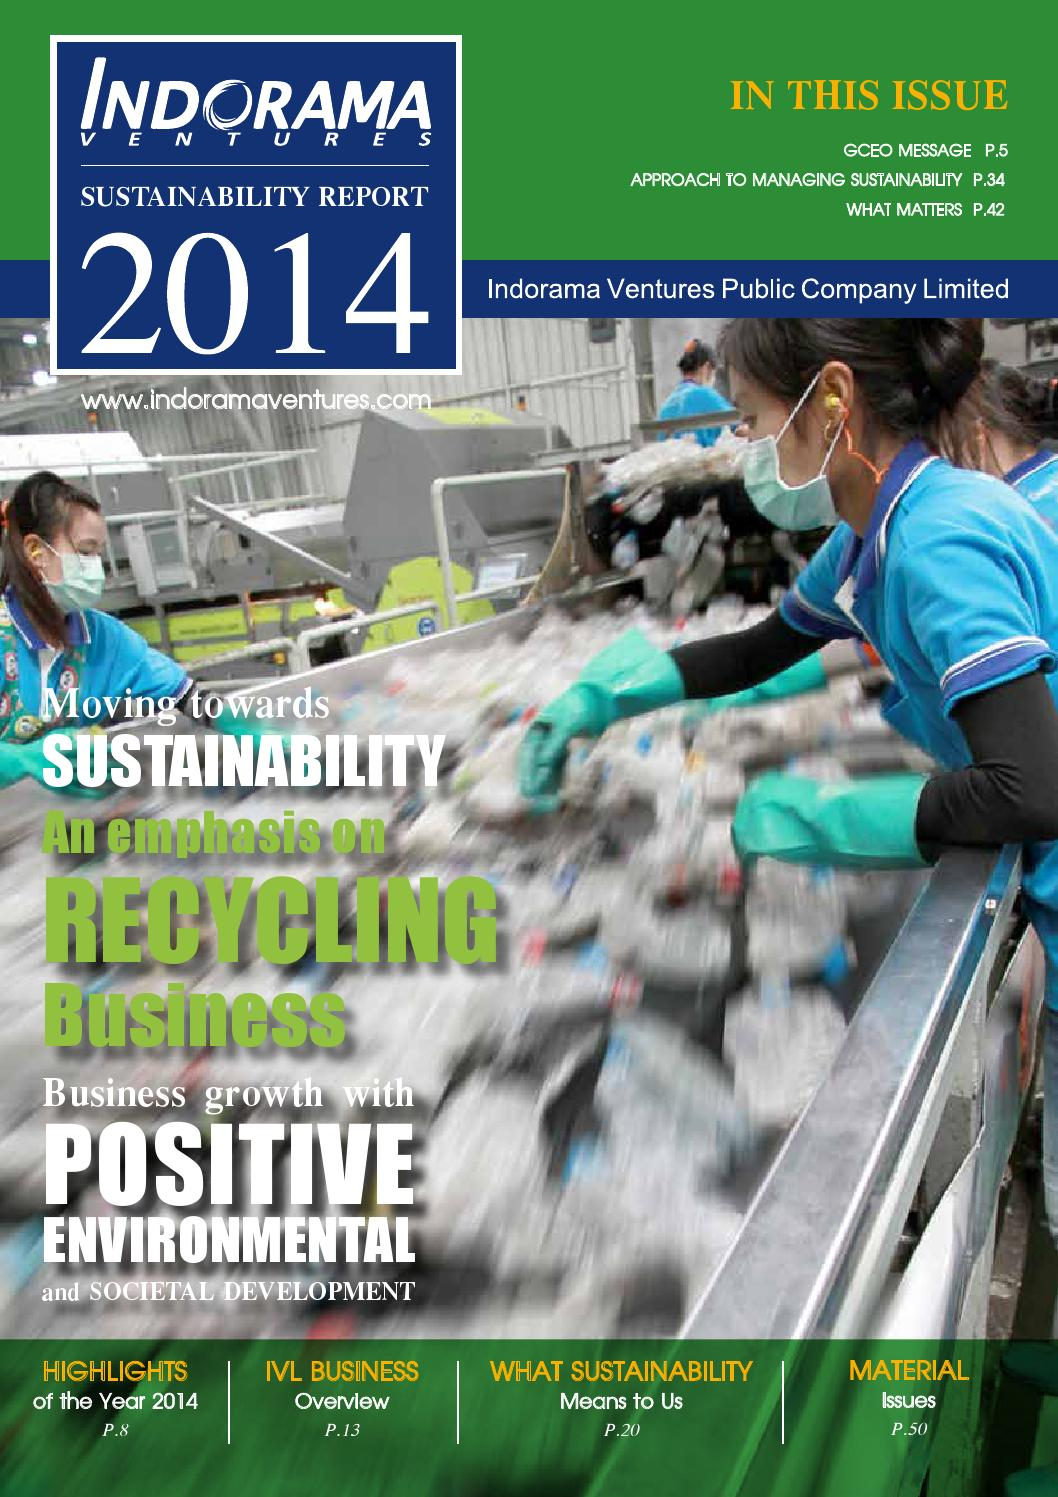 Sustainability Report 2014 by Indoramaventures company - issuu